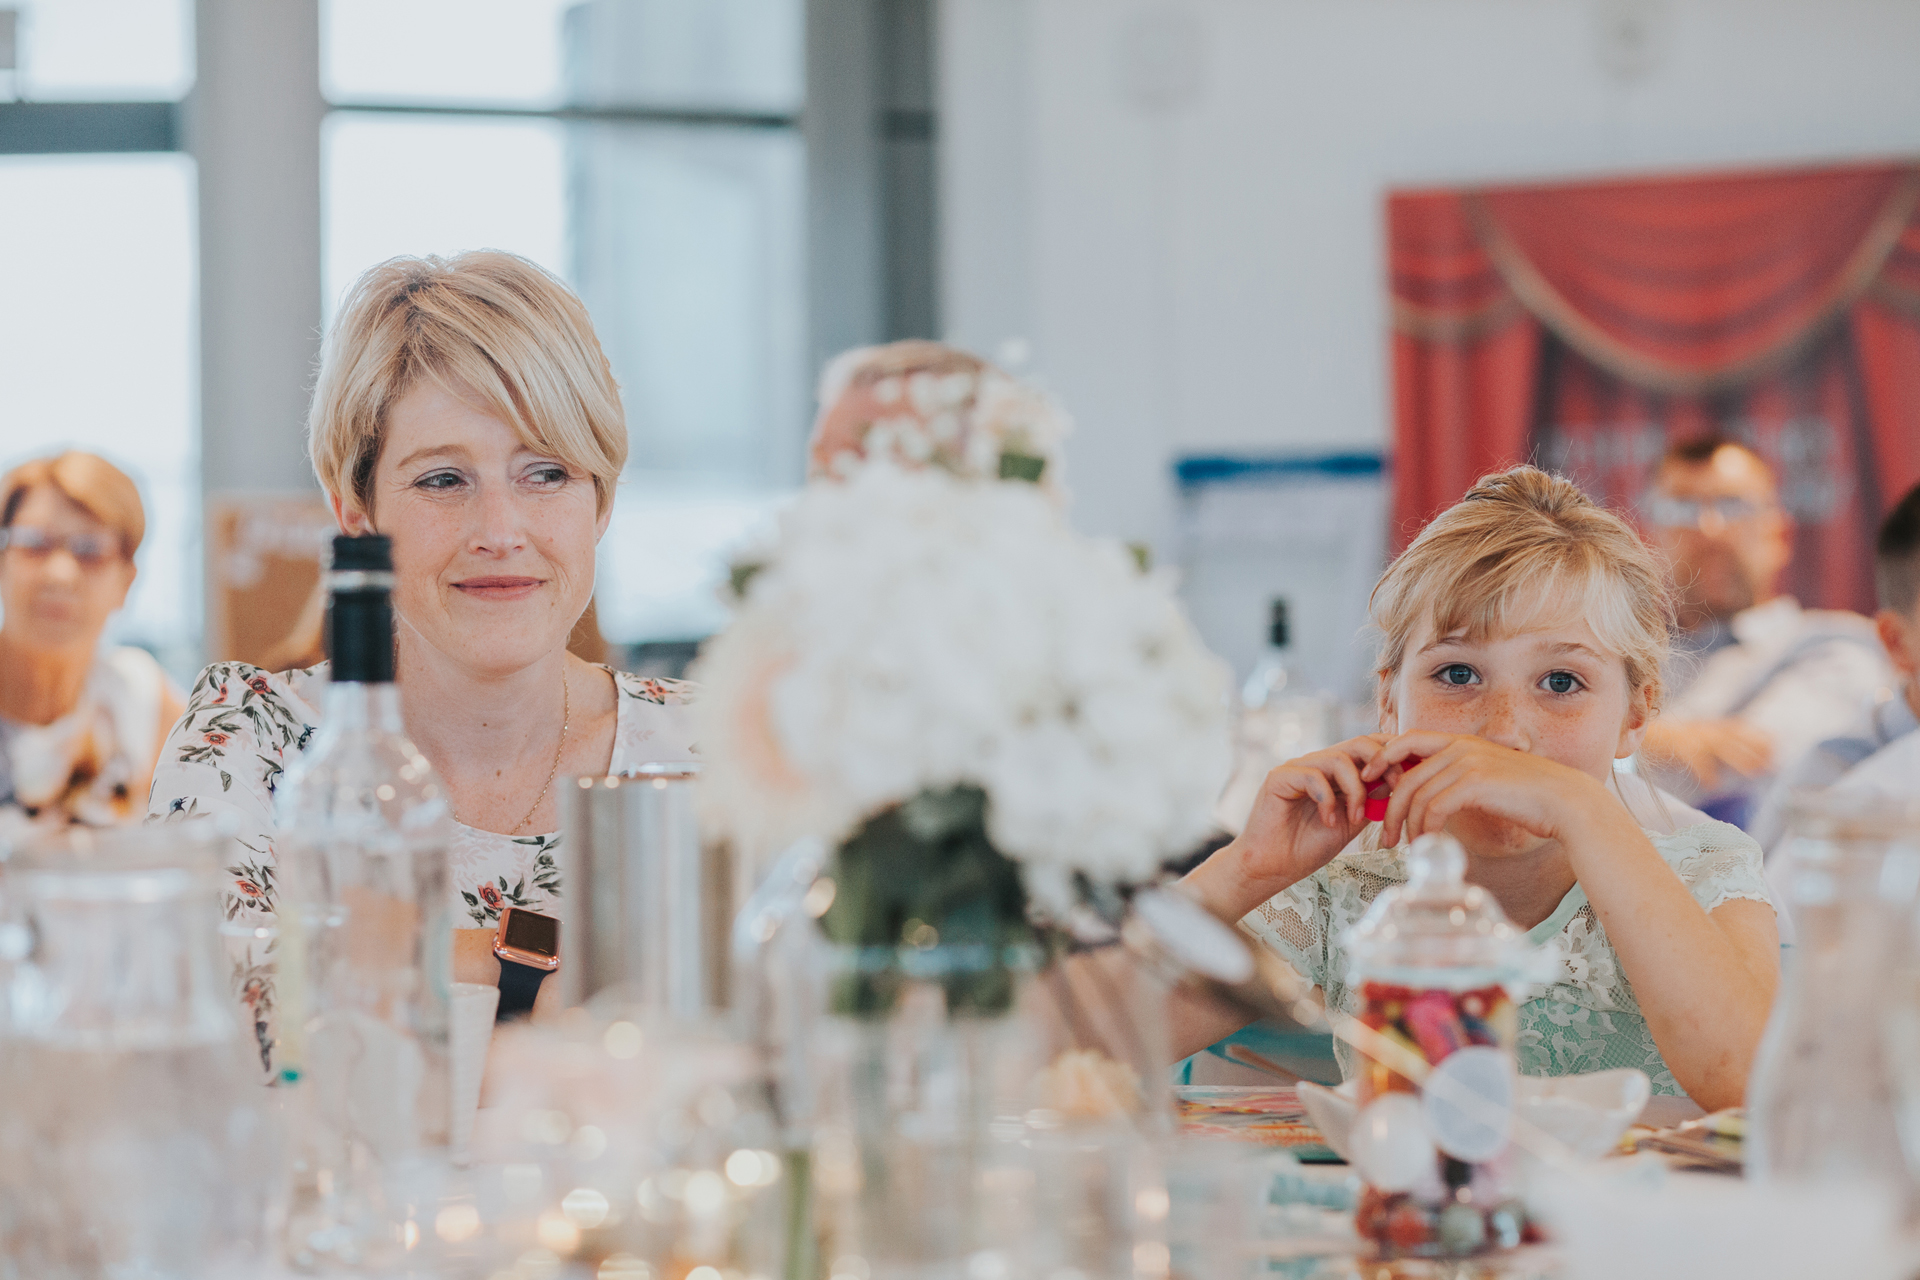 Flower girl eats sweets at wedding table.